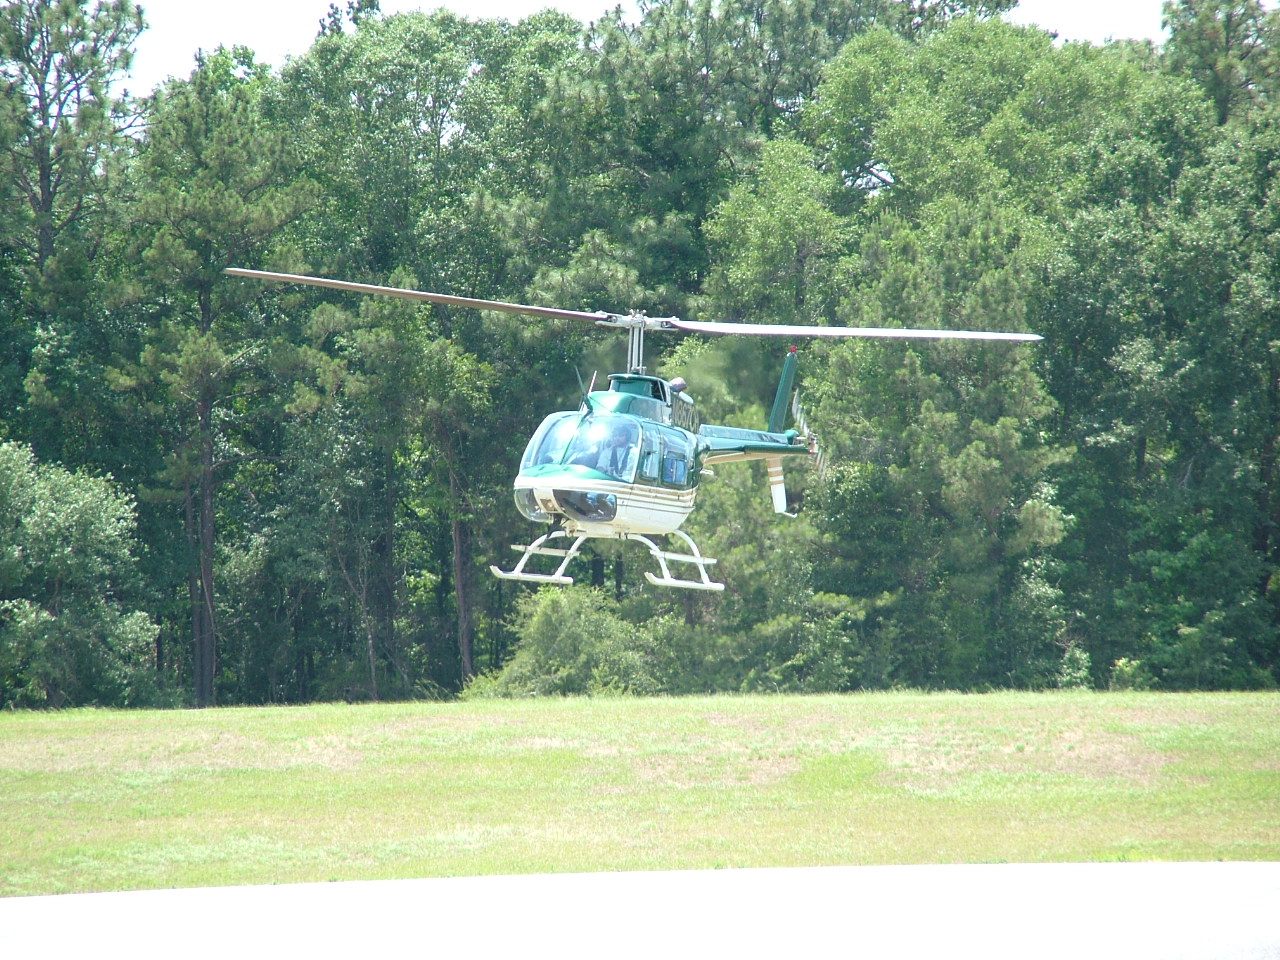 helicopter, flight, pilot, family day, Army, ride, flight, school